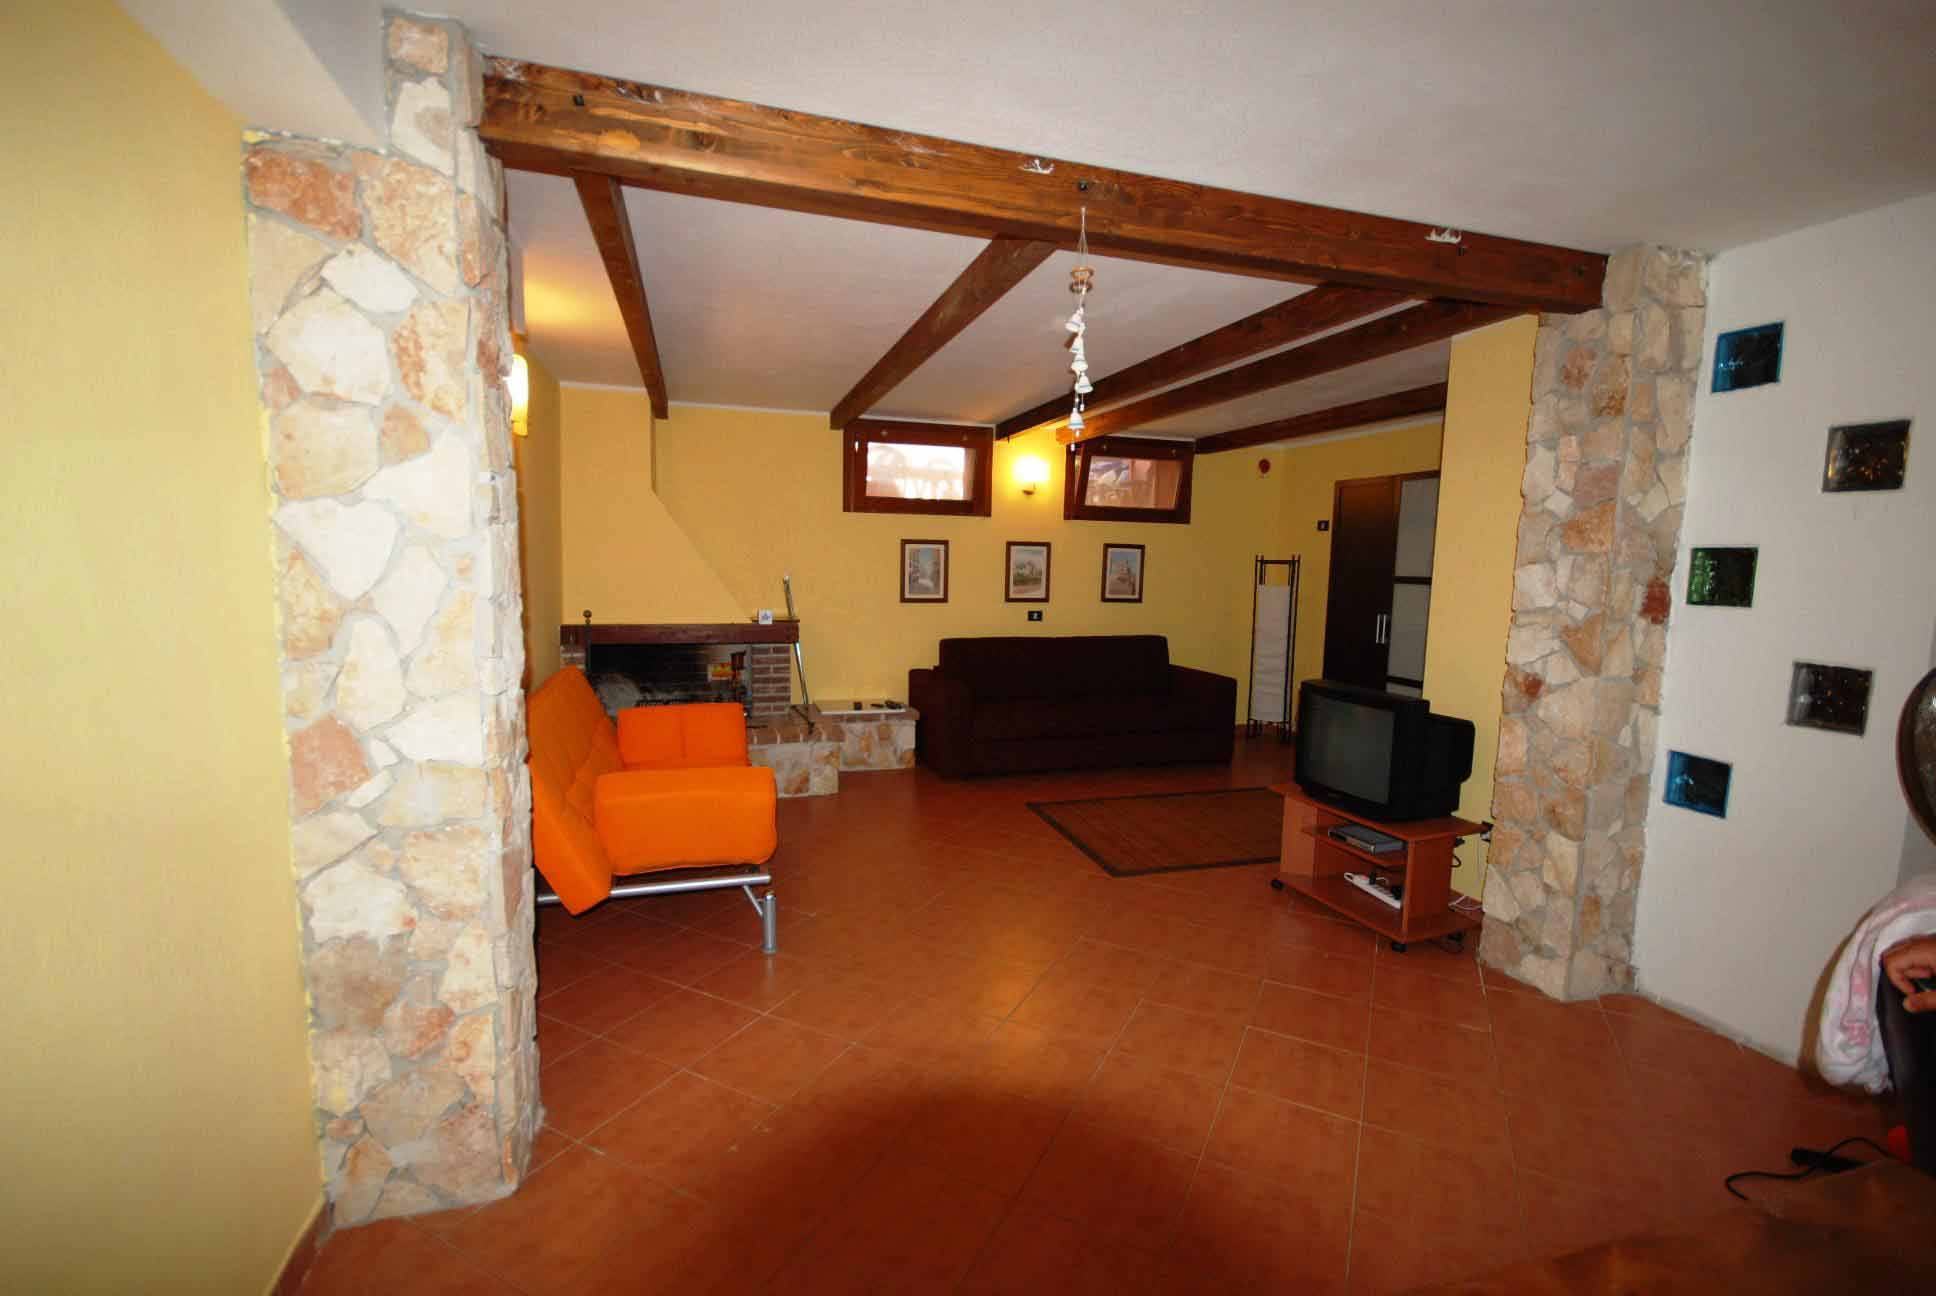 Maracalagonis BB Home Sweet Home, Maracalagonis, Italy, Italy hostels and hotels